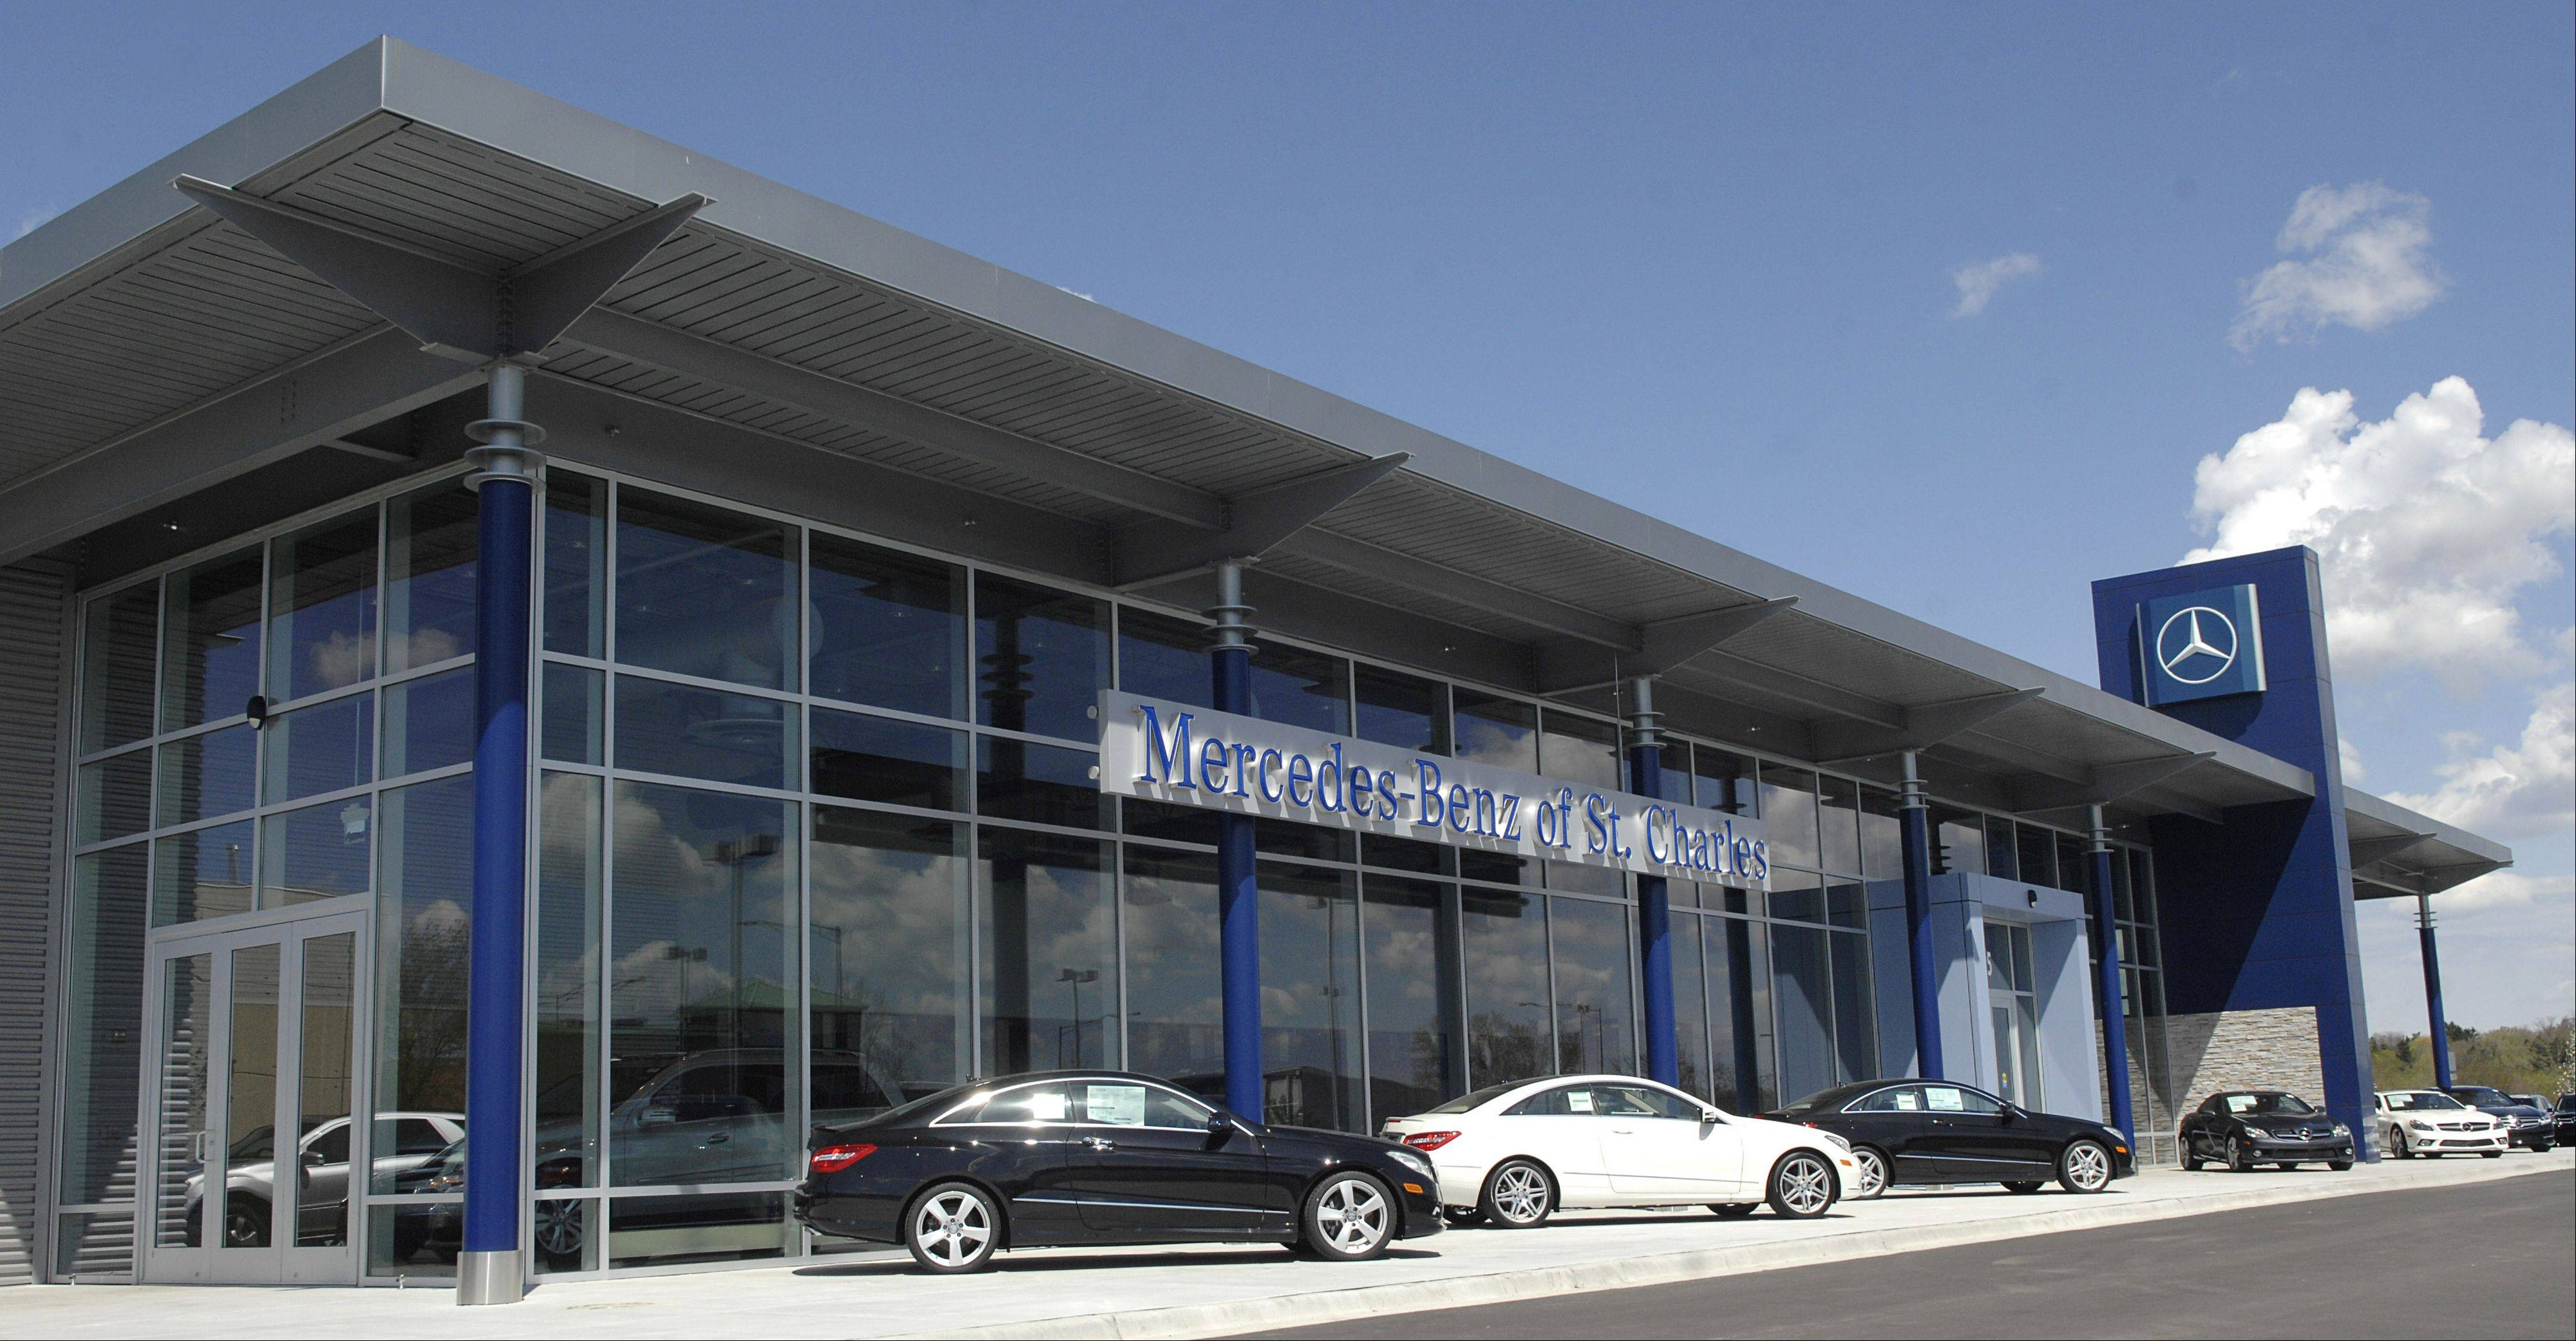 Mercedes-Benz of St. Charles at 225 N. Randall Road.